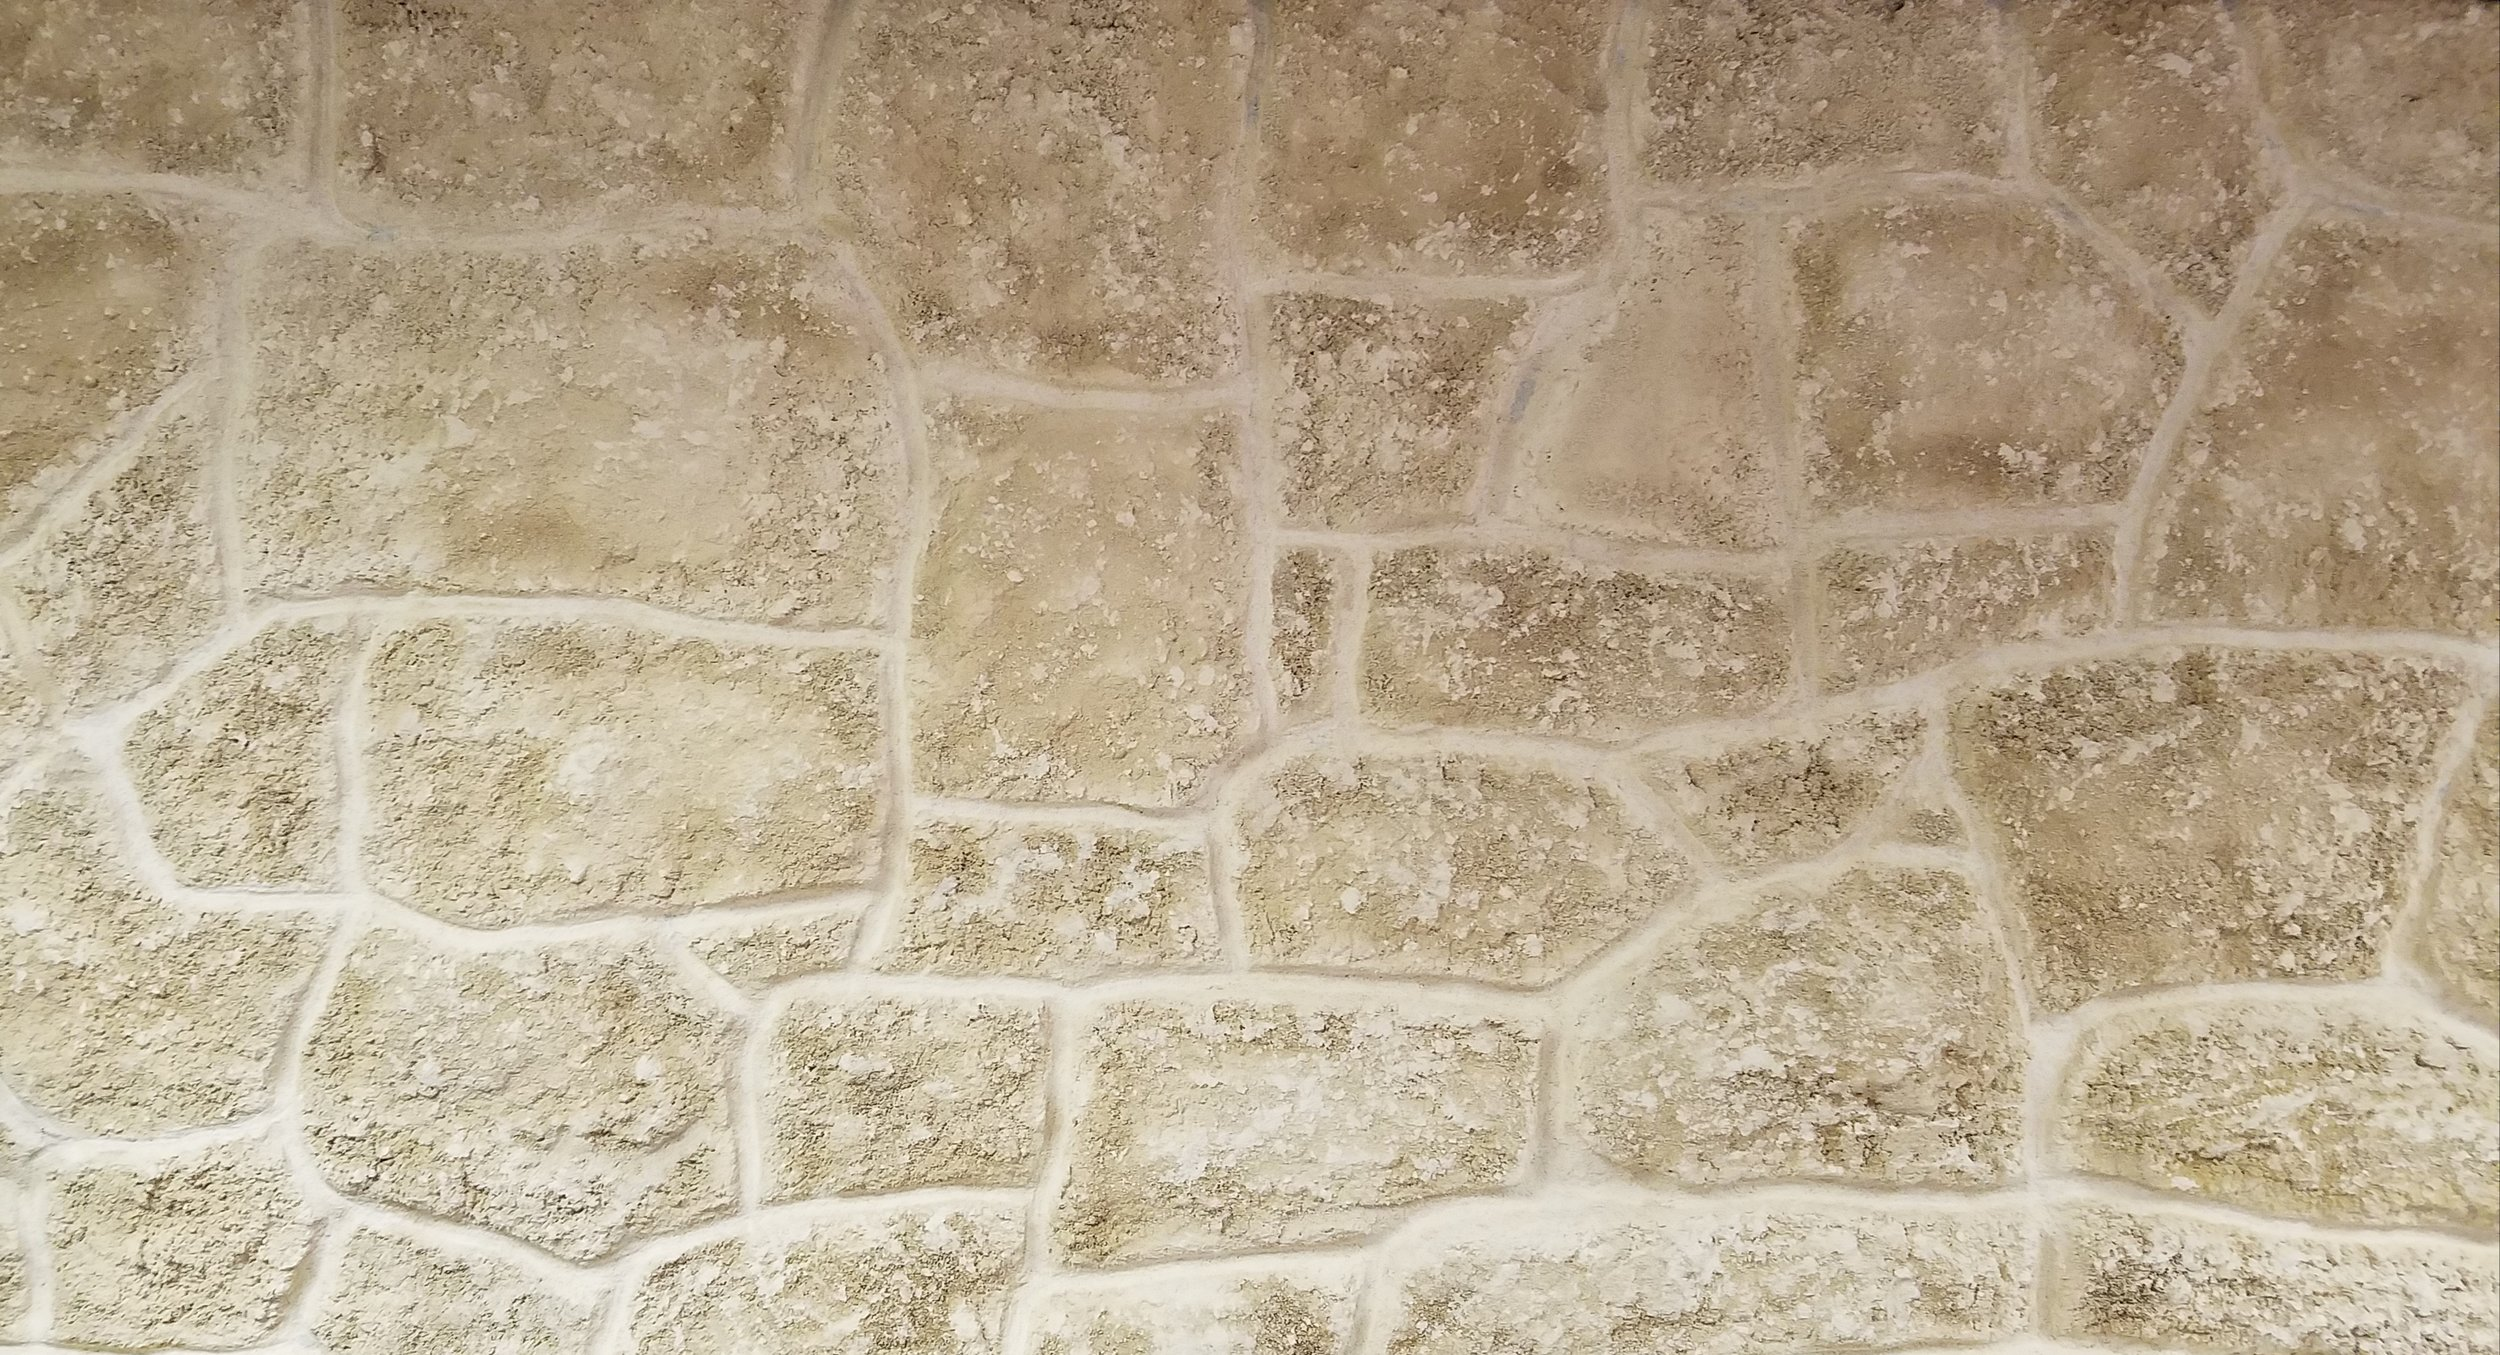 Light Tan Rubble Stone